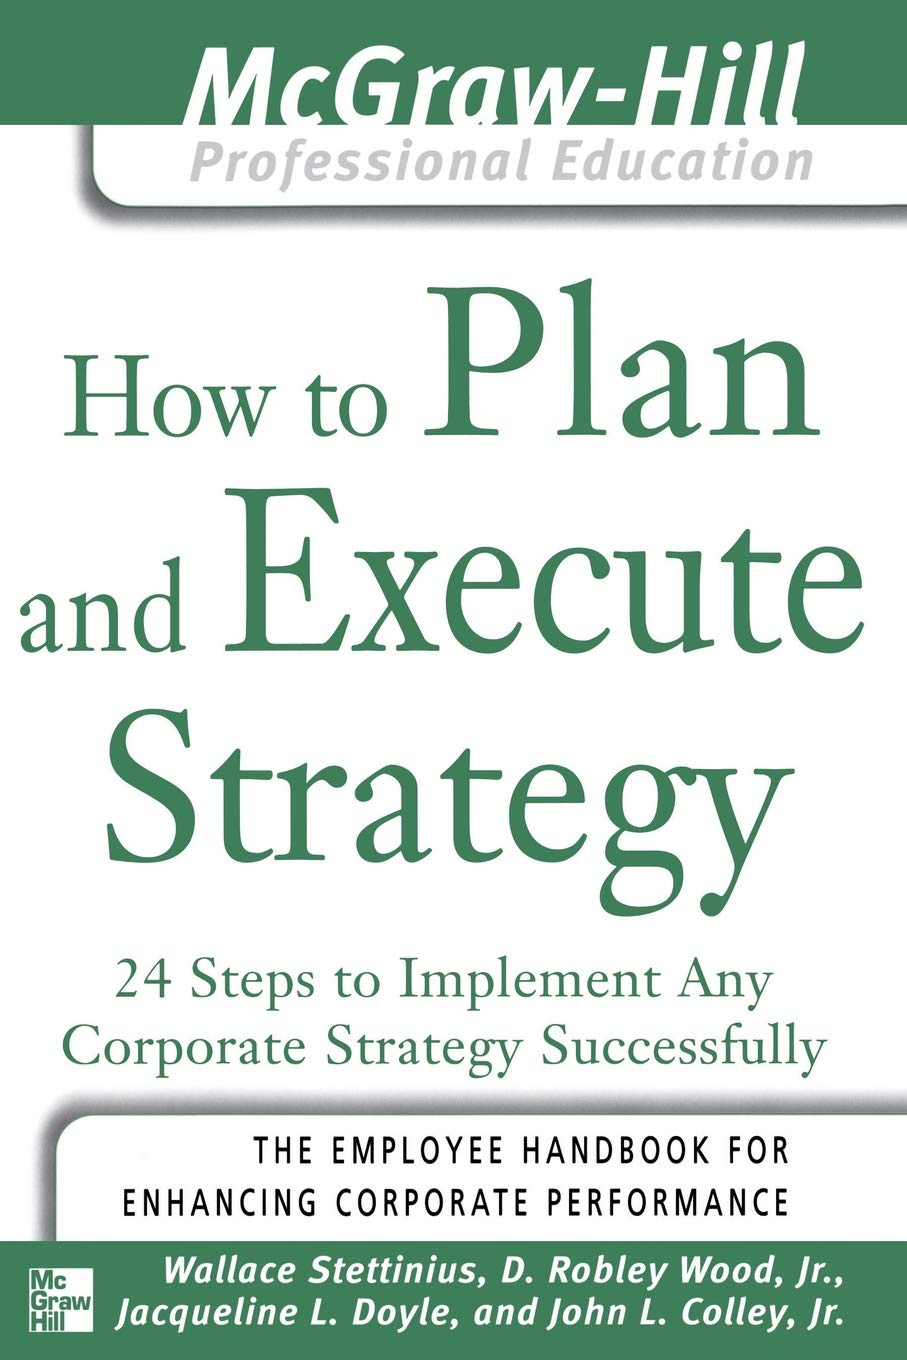 Download How to Plan and Execute Strategy: 24 Steps to Implement Any Corporate Strategy Successfully (The McGraw-Hill Professional Education Series) pdf